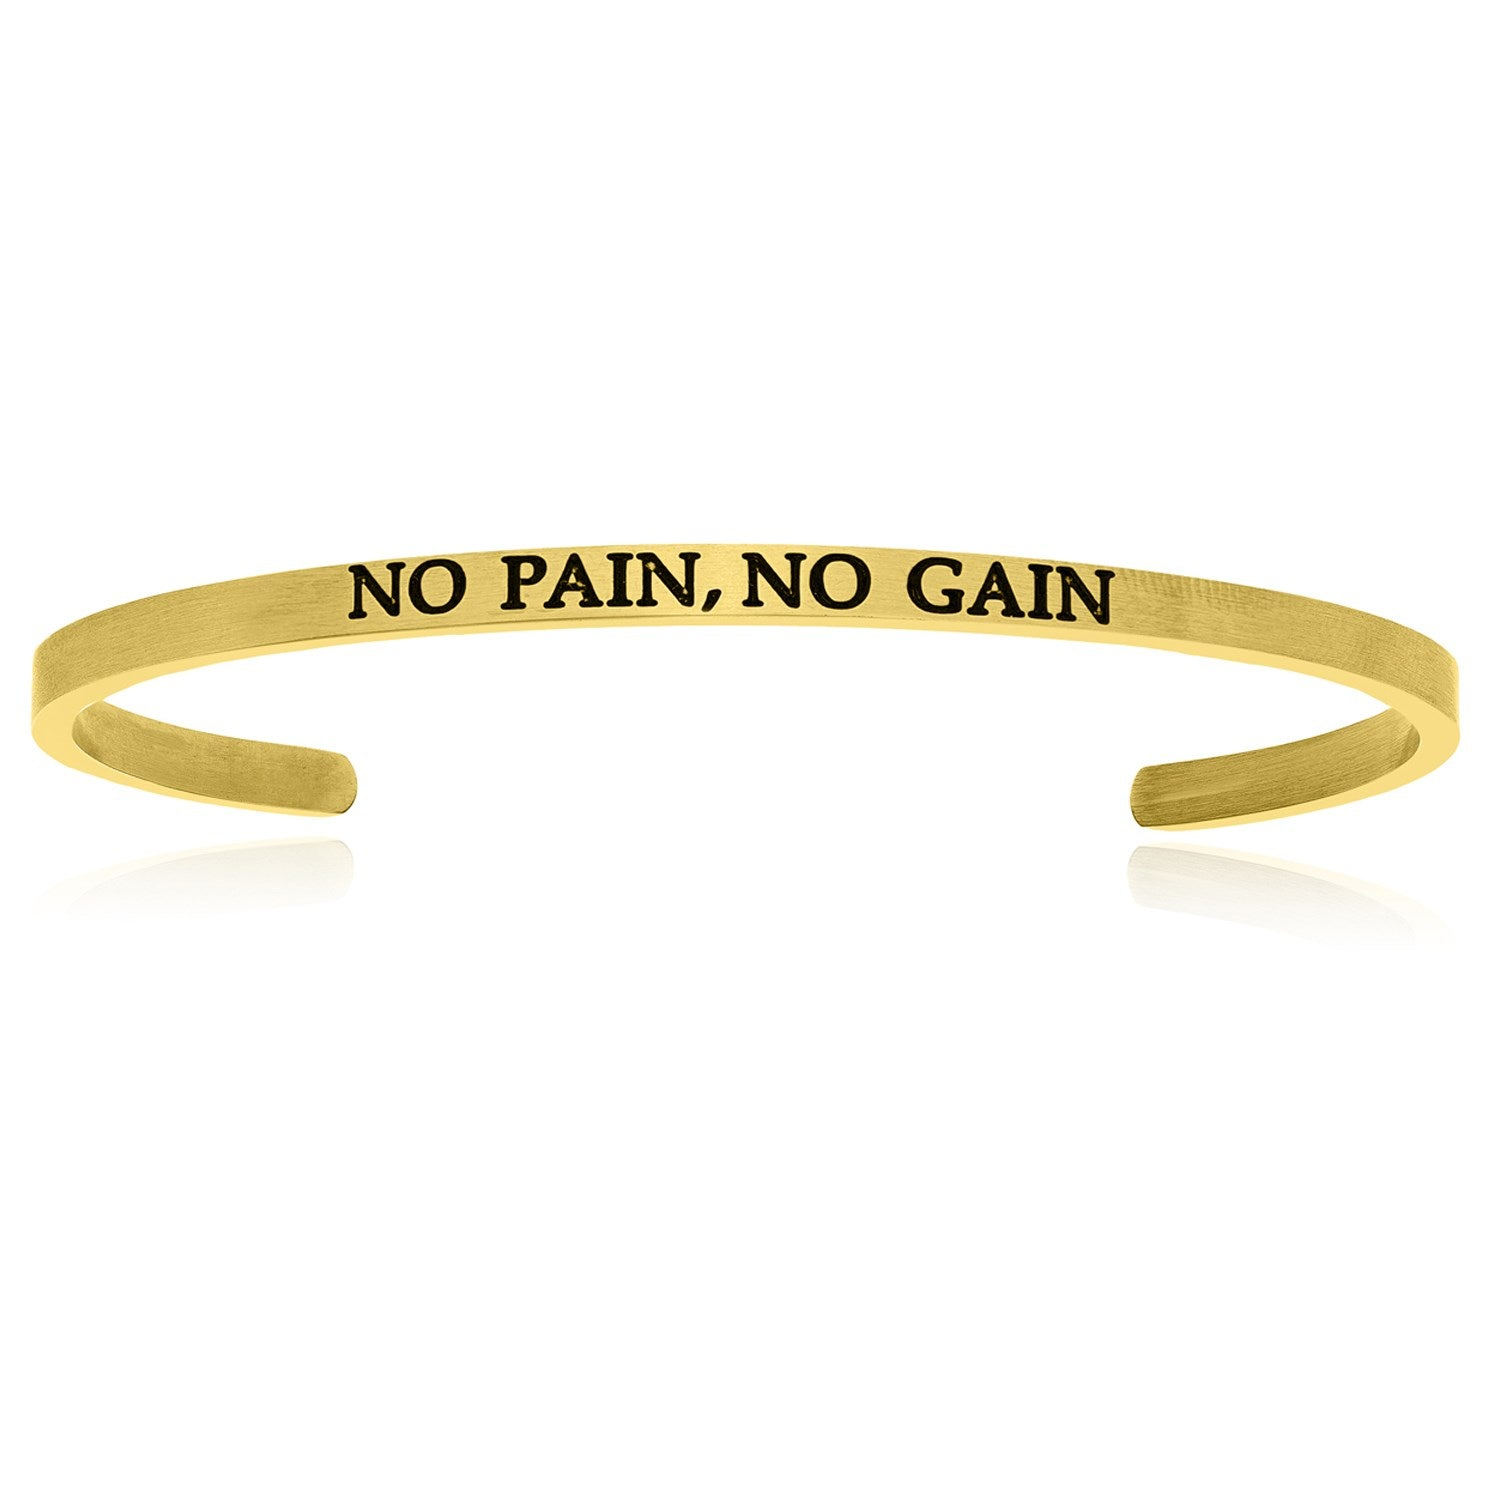 Yellow Stainless Steel No Pain  No Gain Cuff Bracelet